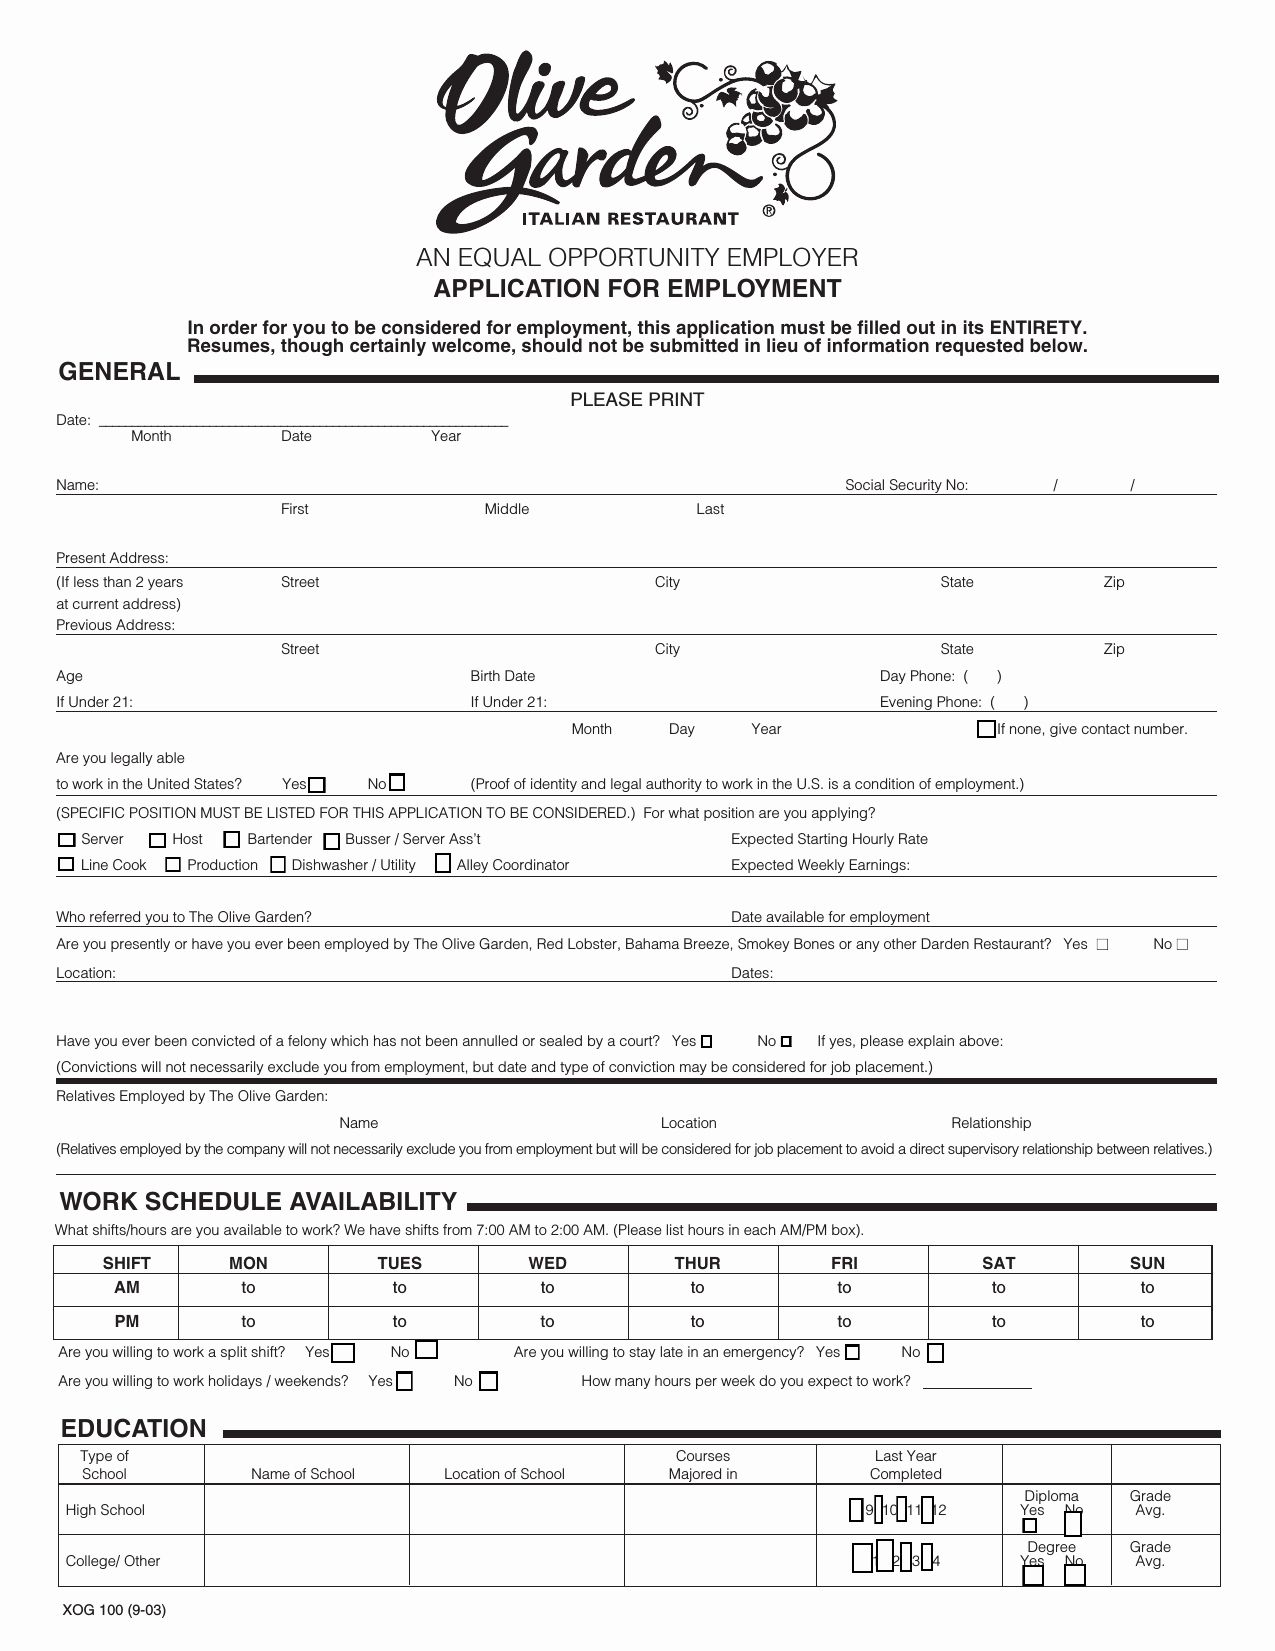 Job Application form Pdf Best Of Download Olive Garden Job Application form – Careers